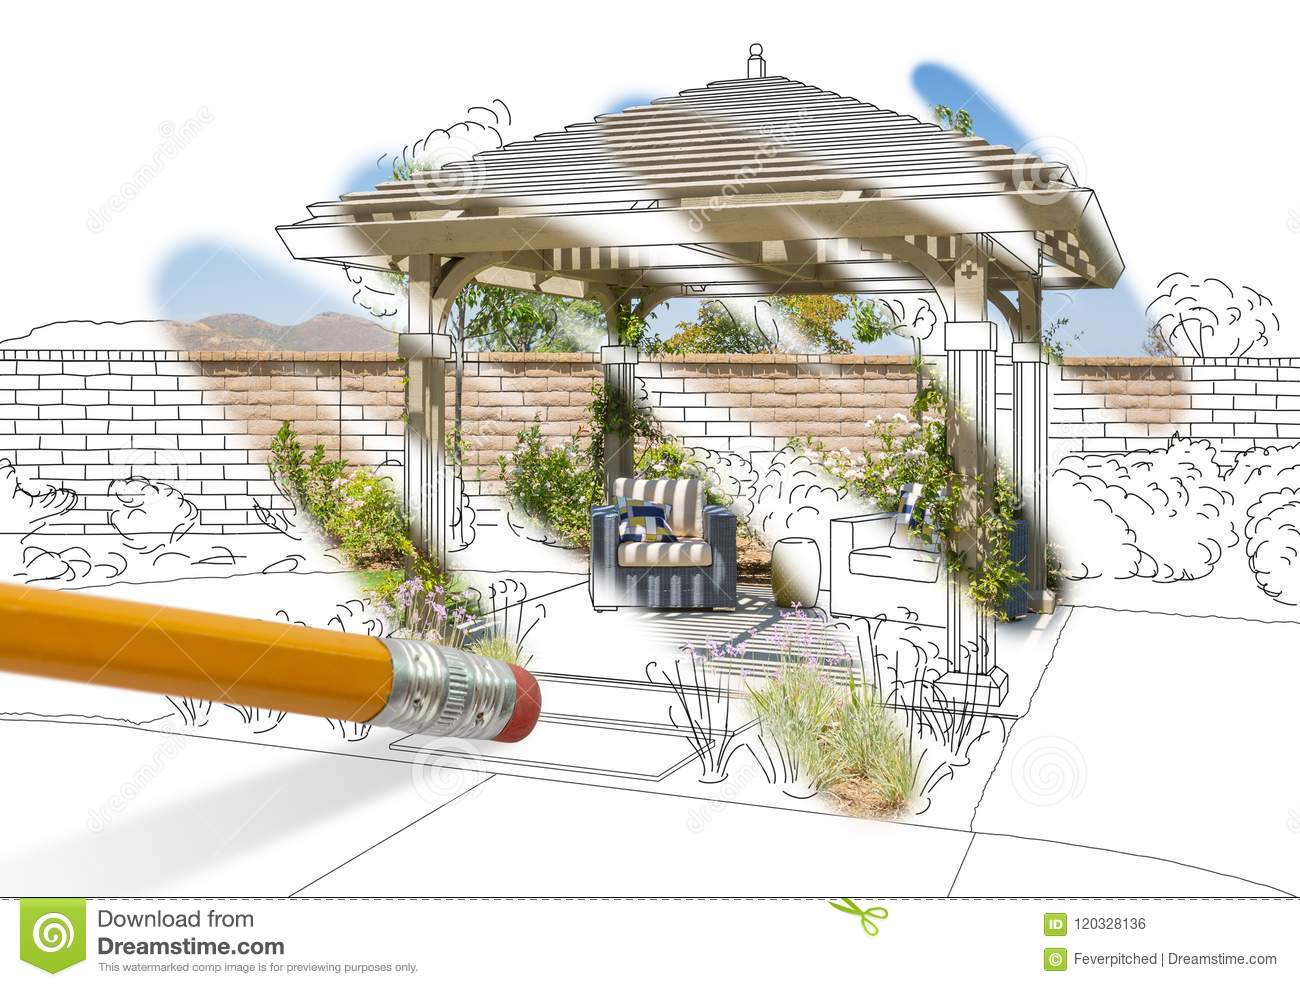 Pencil Erasing Drawing To Reveal Finished Pergola Patio Cover